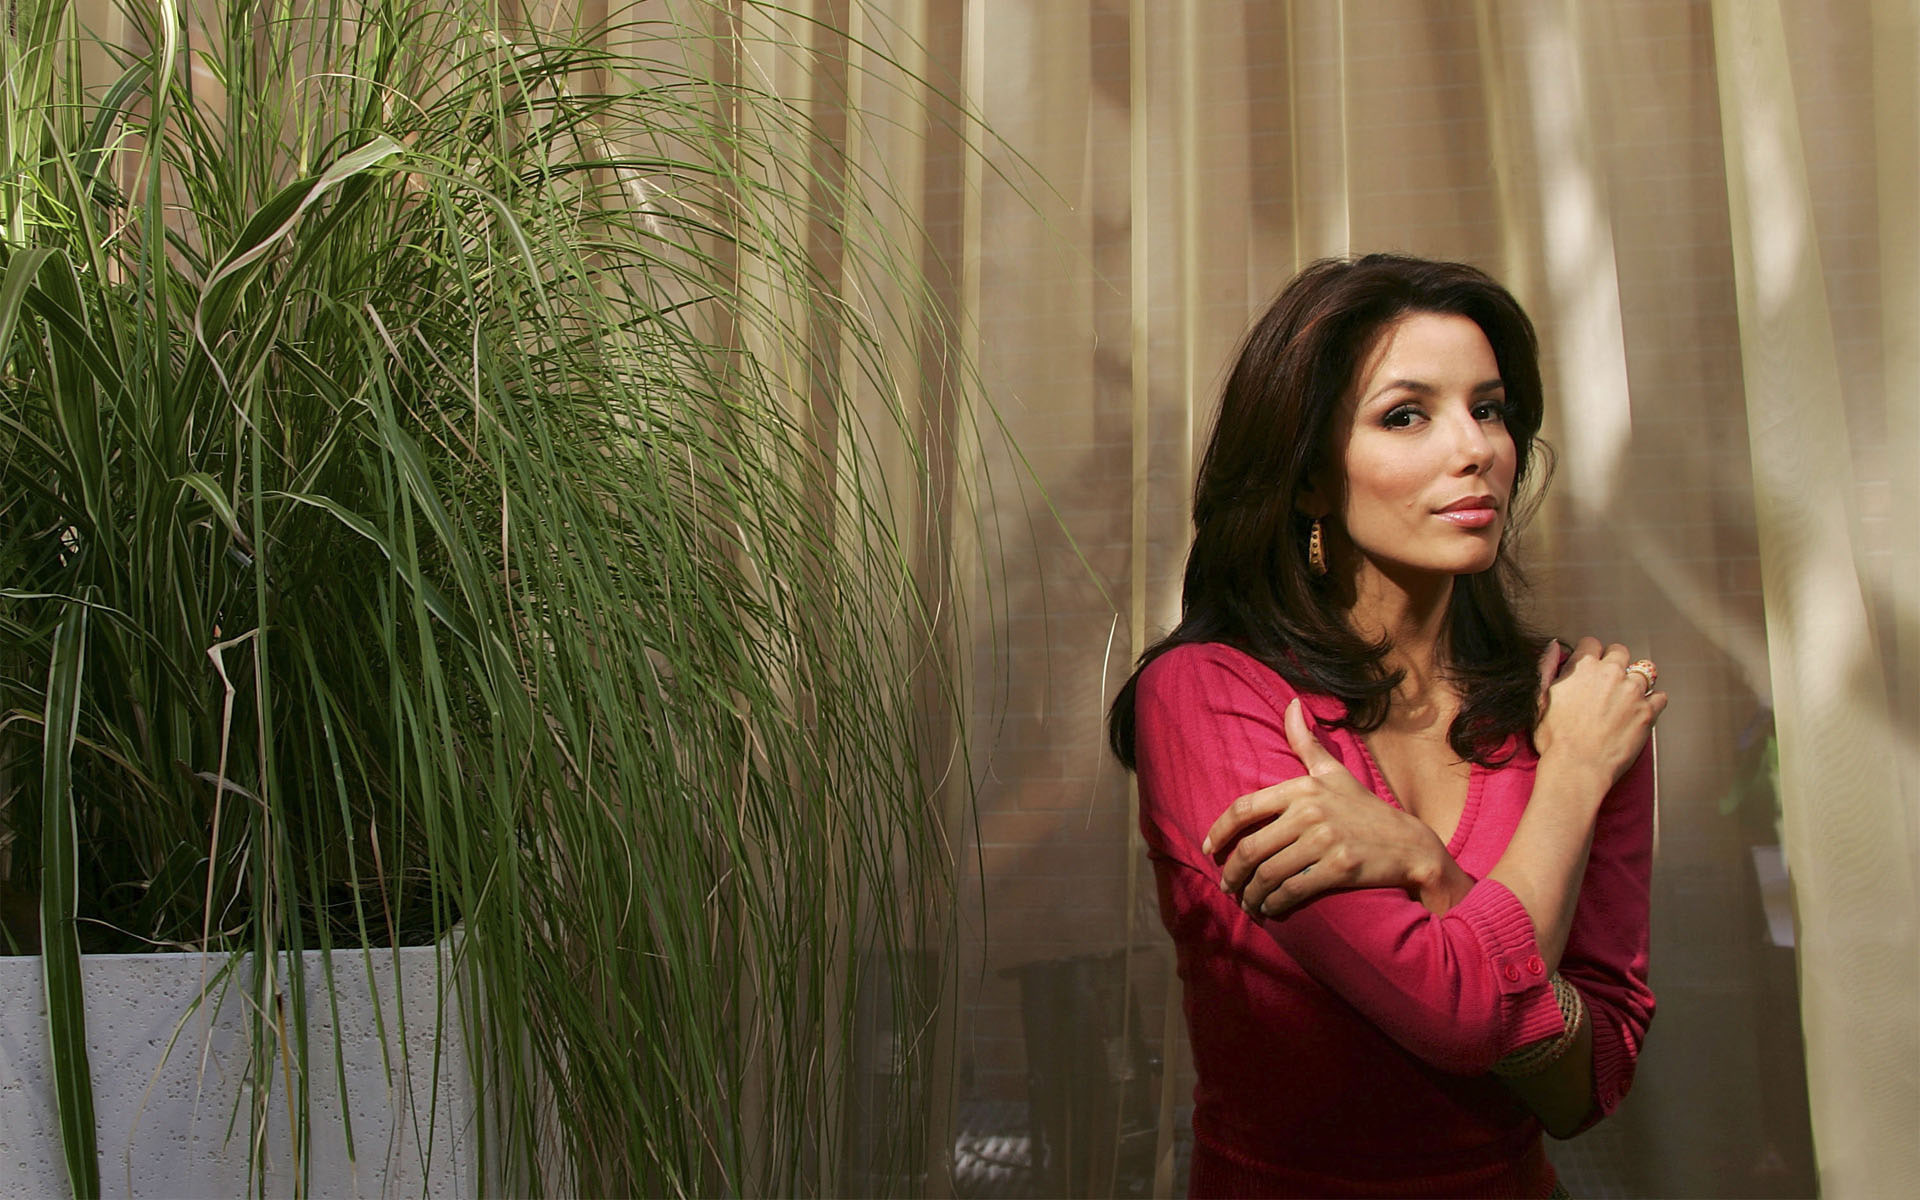 hd eva longoria amazing still with side trees pose download free mobile background images